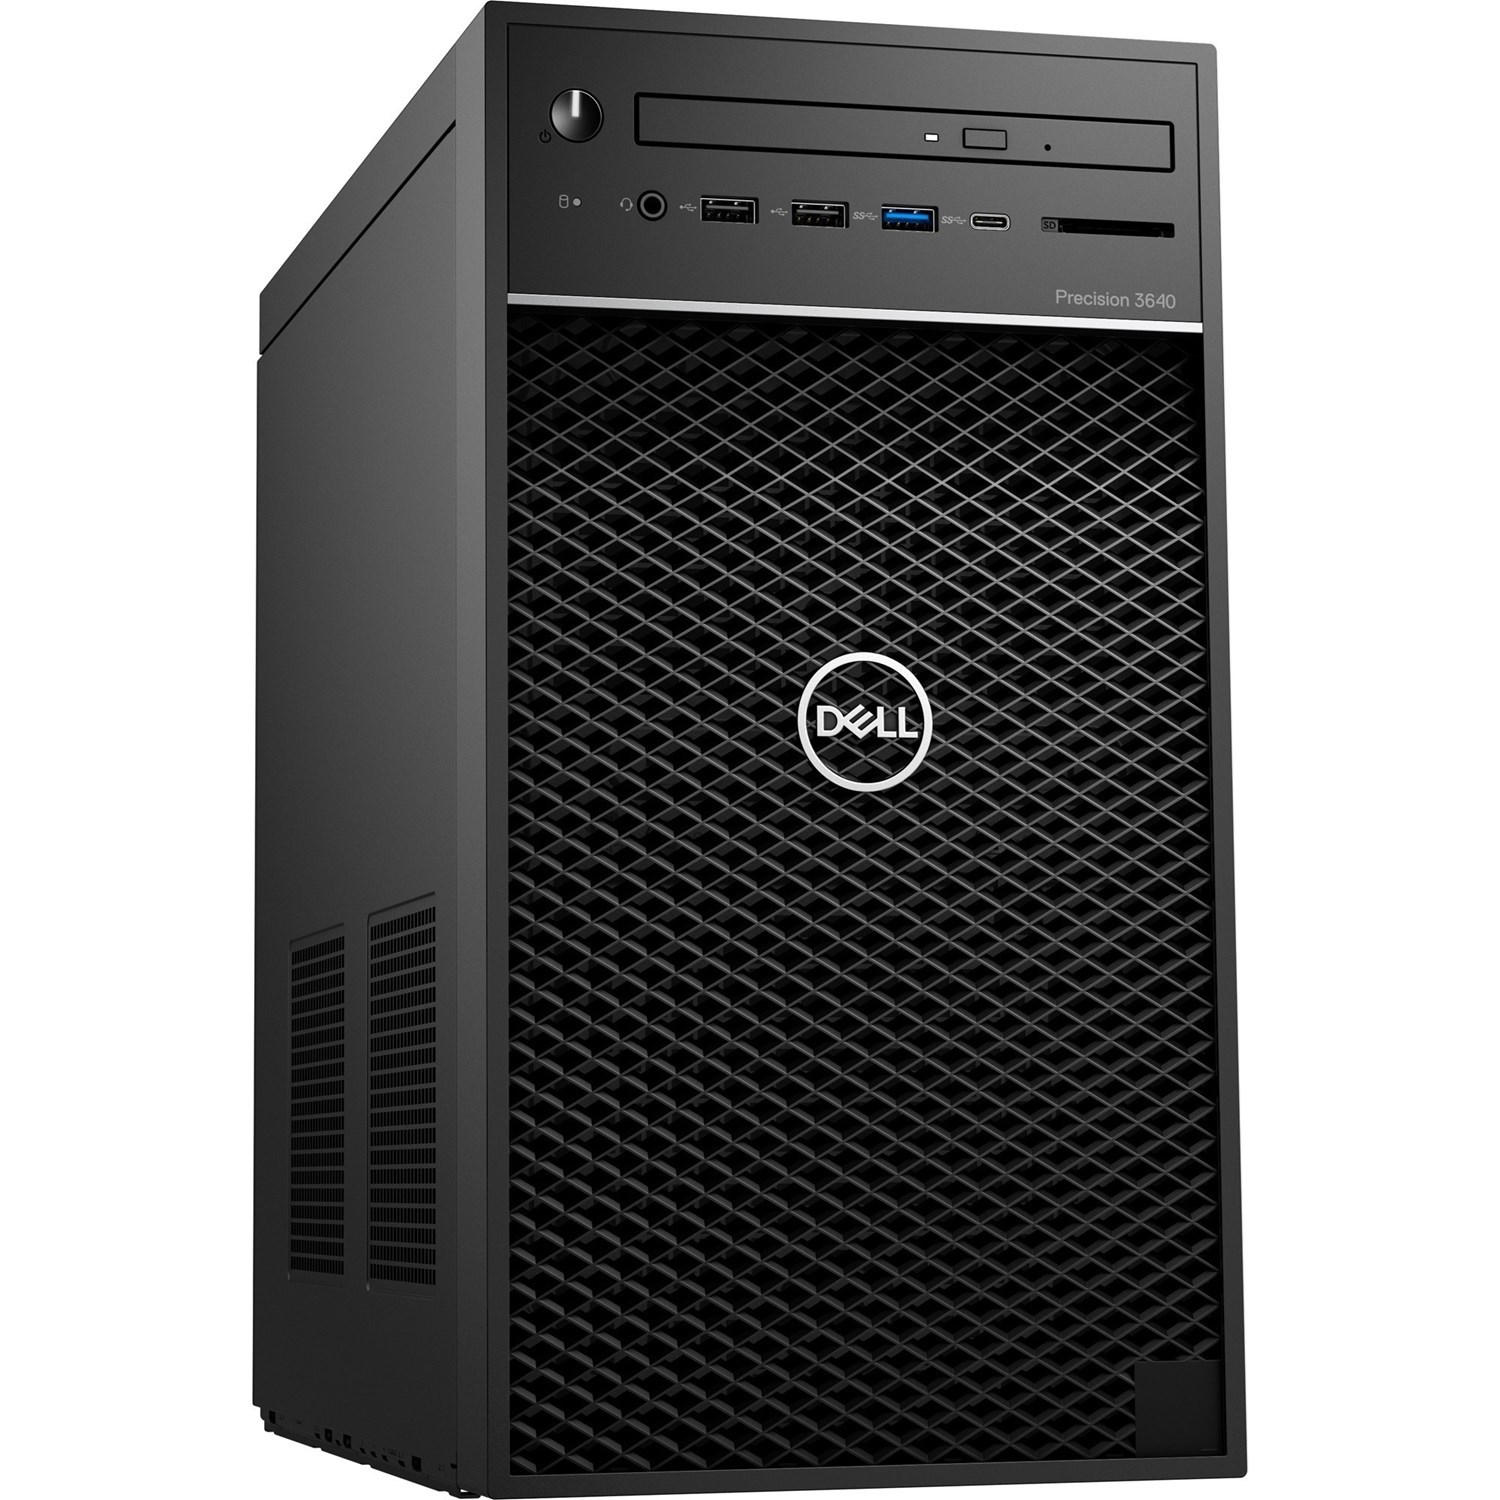 PC Dell Precision 3640 Tower CTO BASE (42PT3640DW01)/ Intel Xeon W-1270P (3.8GHz, 16MB)/ Ram 8GB(1x8GB) DDR4/ SSD 256GB + HDD 1TB/ Nvidia Quadro P2200, 5GB, 4 DP/ DVDRW/ Key + Mouse/ Win10 Pro/ 3Yrs